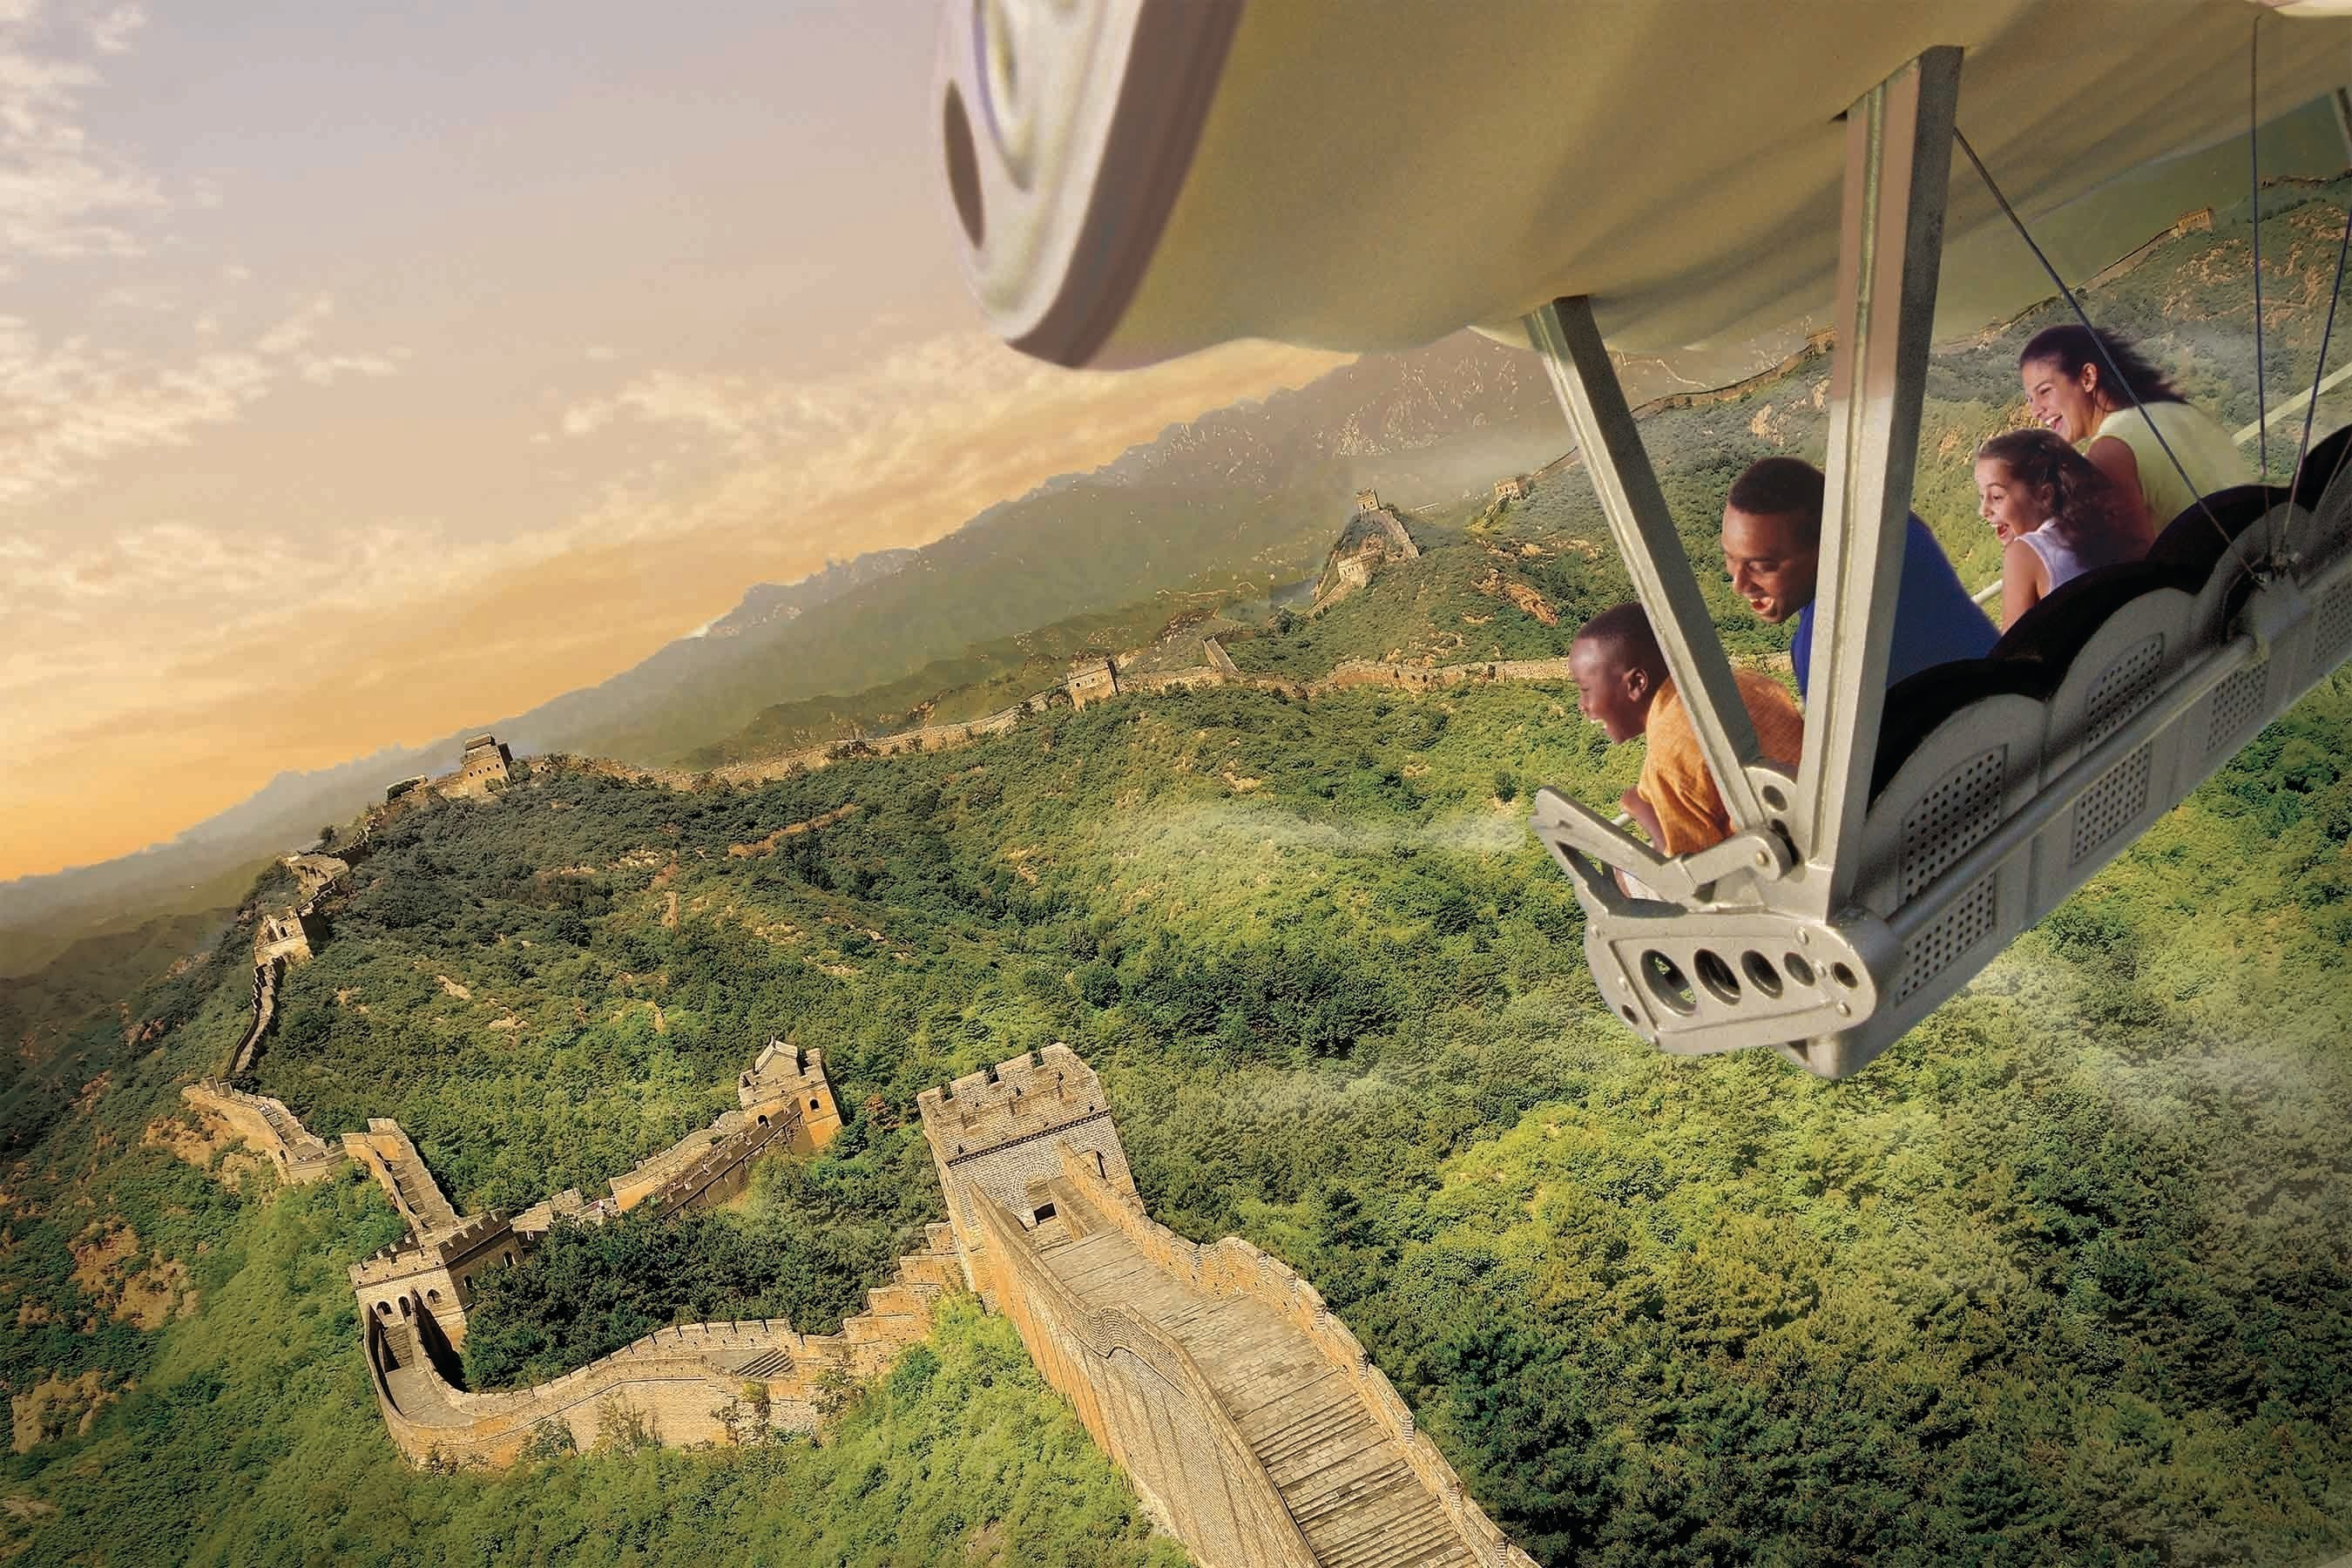 """Guests will celebrate the U.S. debut of the new Soarin' Around the World attraction at The Land pavilion this summer. Now with a third Epcot theater, plus new digital screens and projection systems, the expanded attraction takes guests on an exhilarating """"flight"""" above spectacular global landscapes and man-made wonders. (Photo illustration, Disney)"""